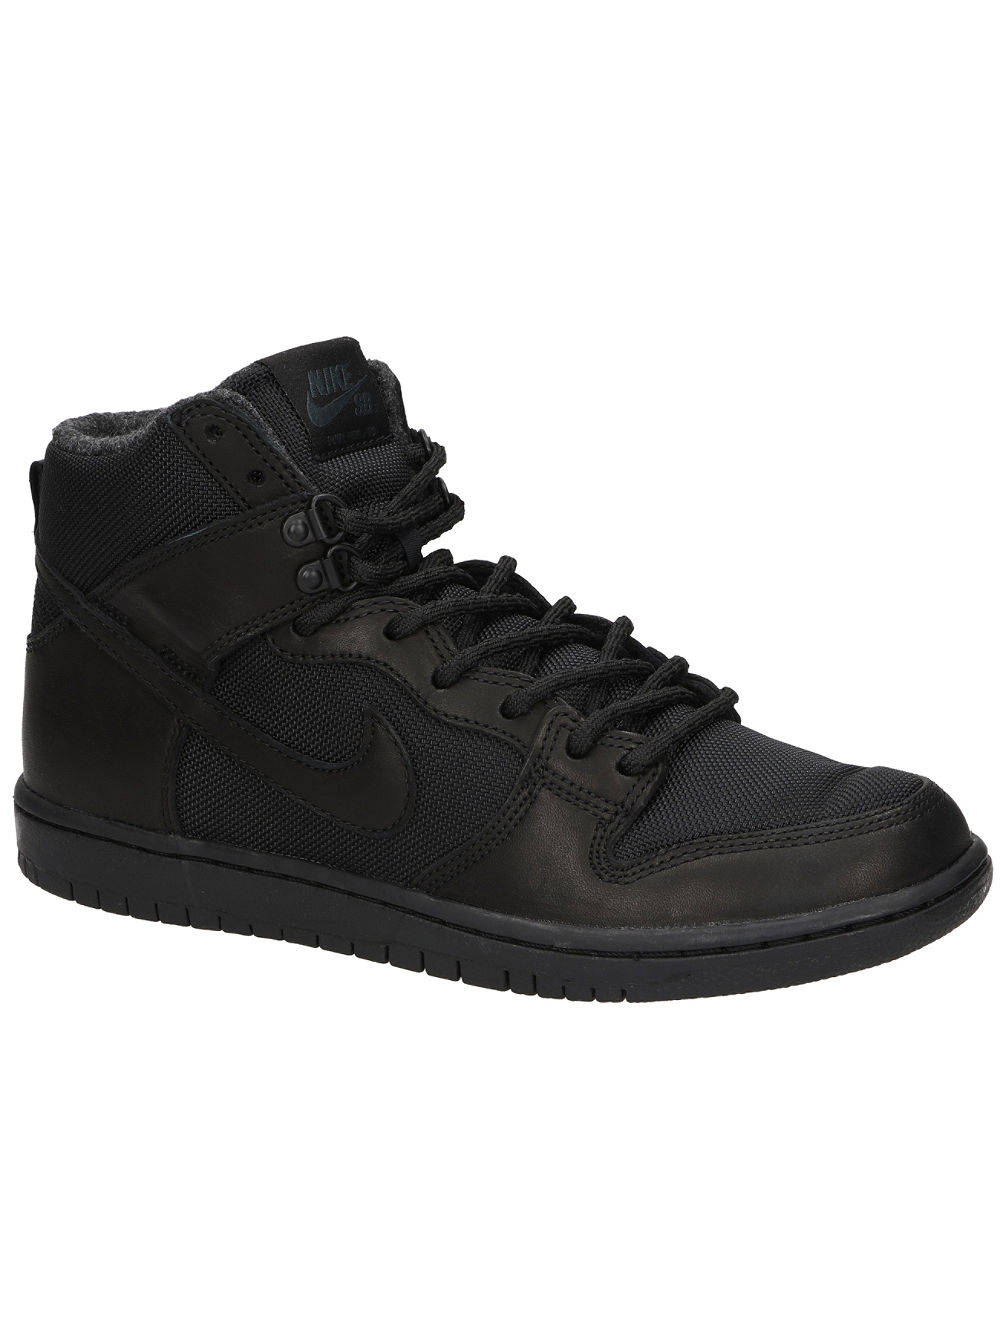 af82adc6dec2 Buy Nike SB Dunk High Pro Bota Shoes online at Blue Tomato